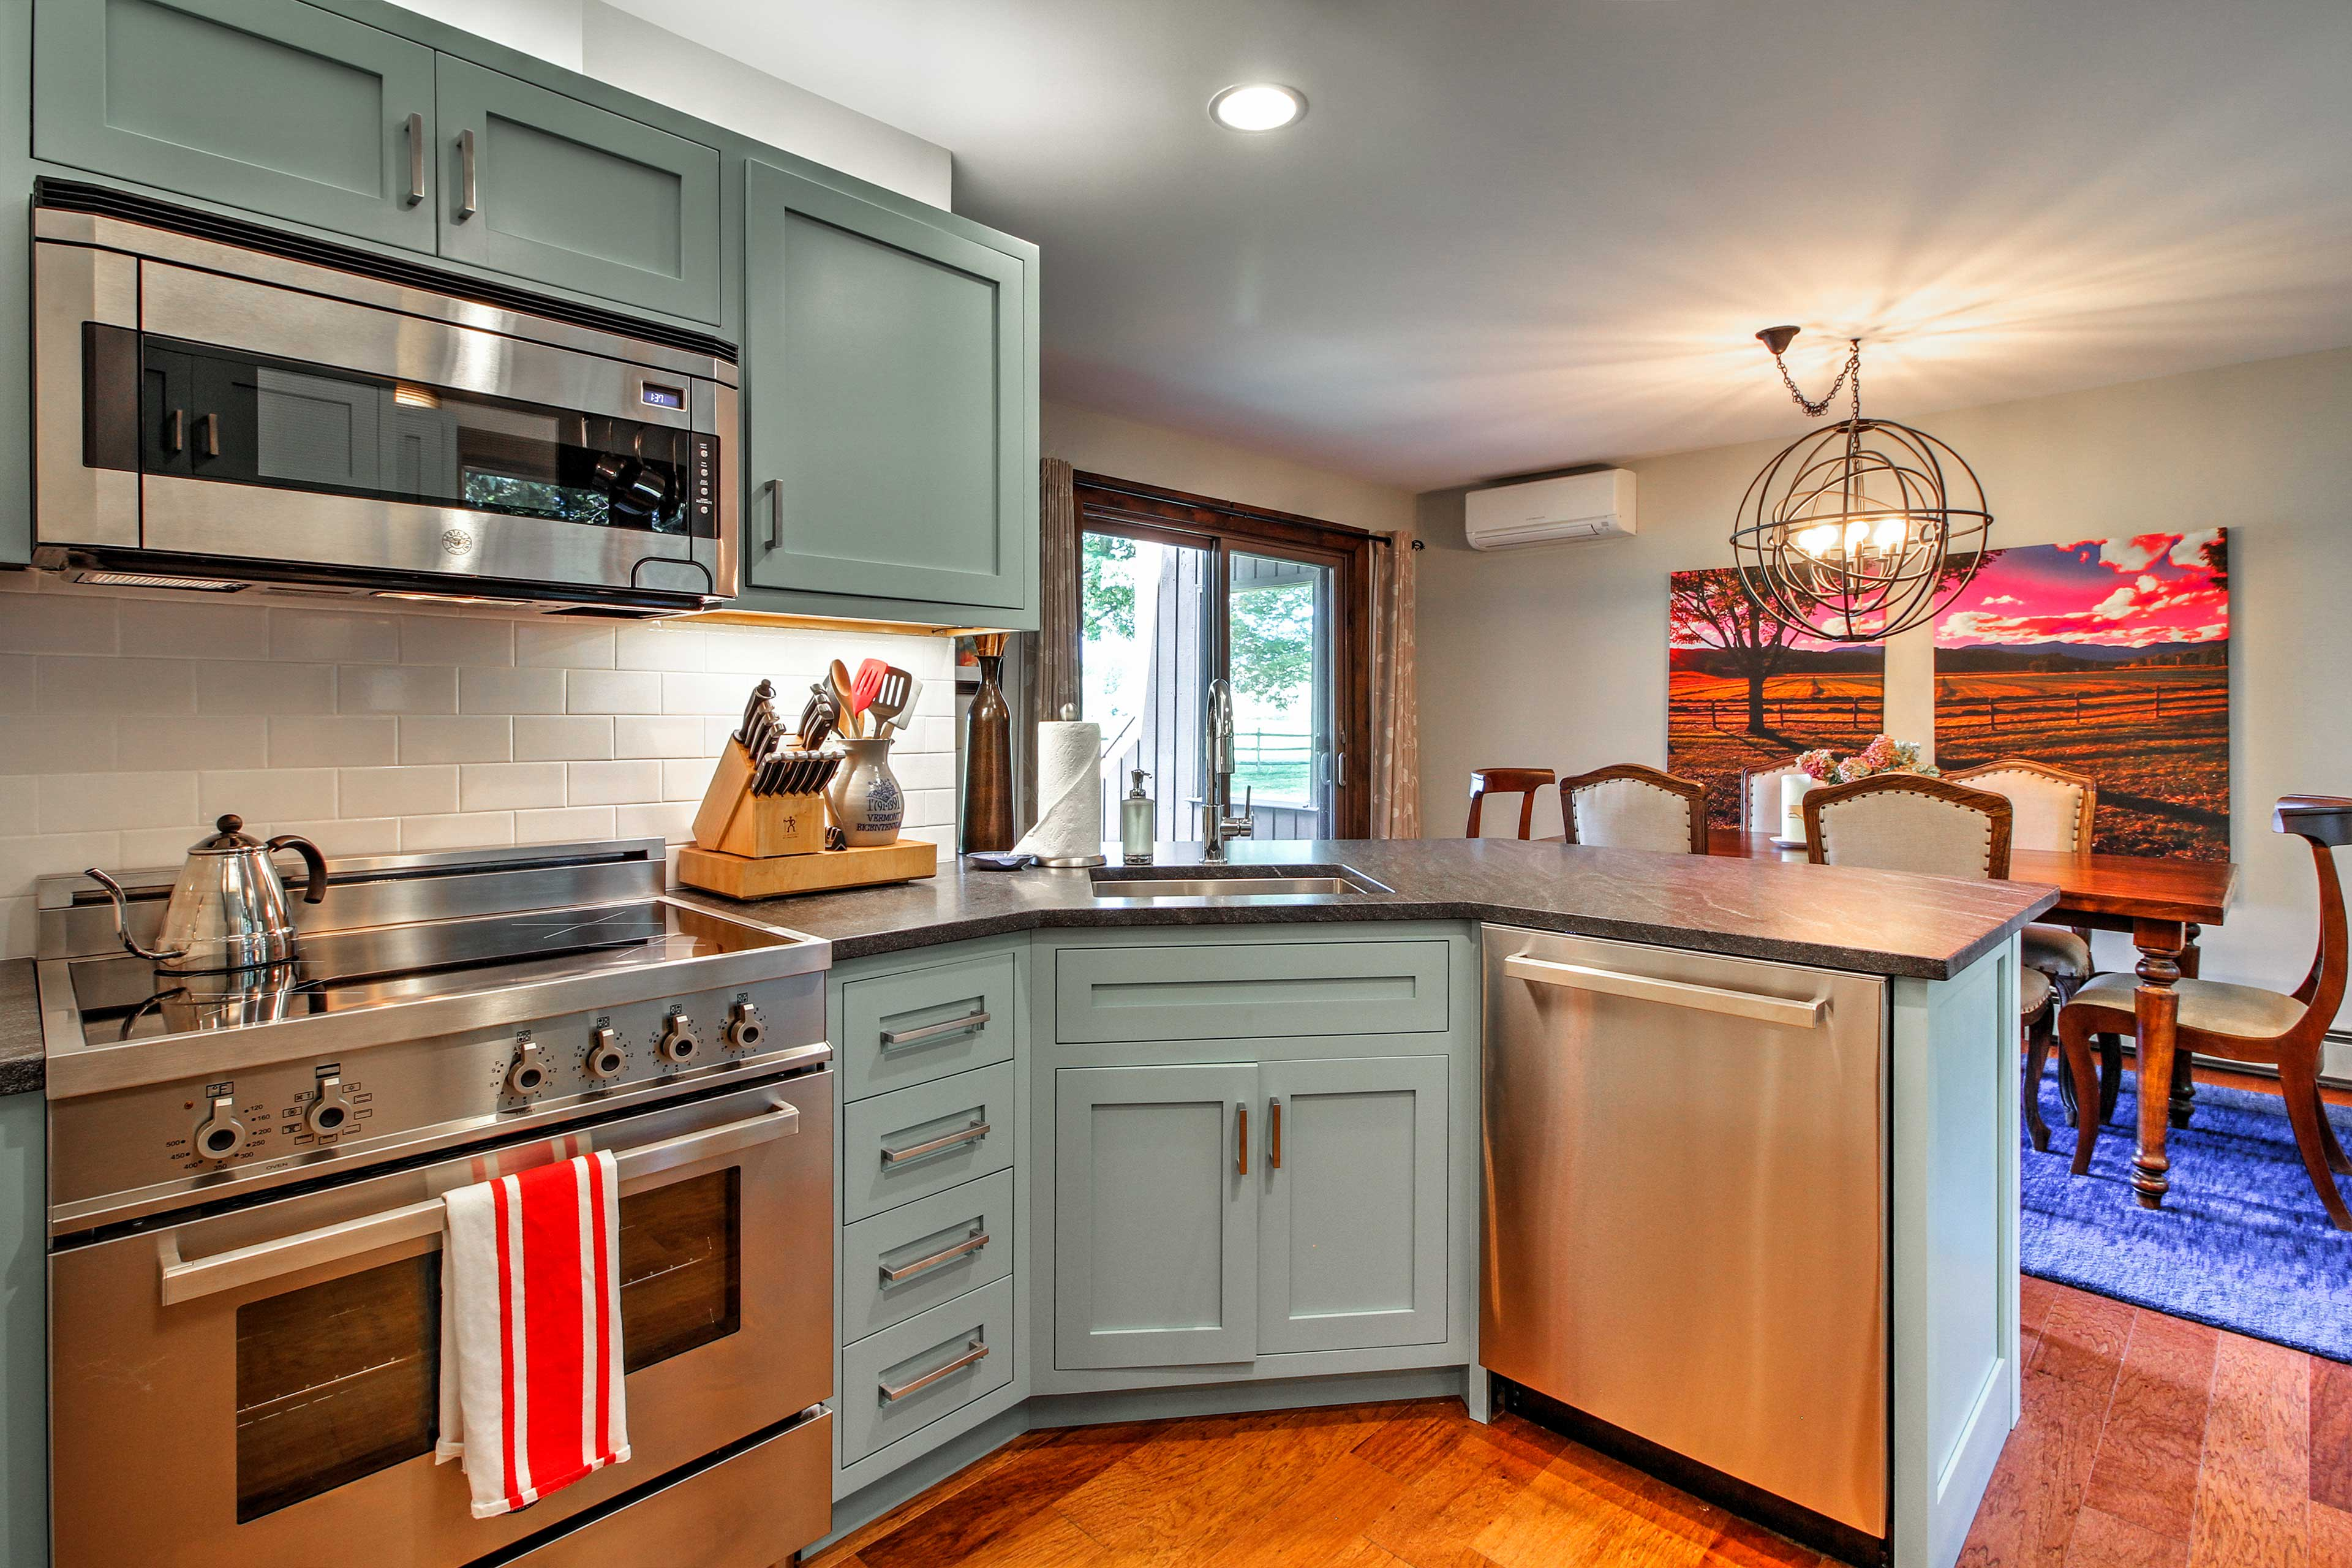 The kitchen comes fully equipped to take on all your cooking needs!